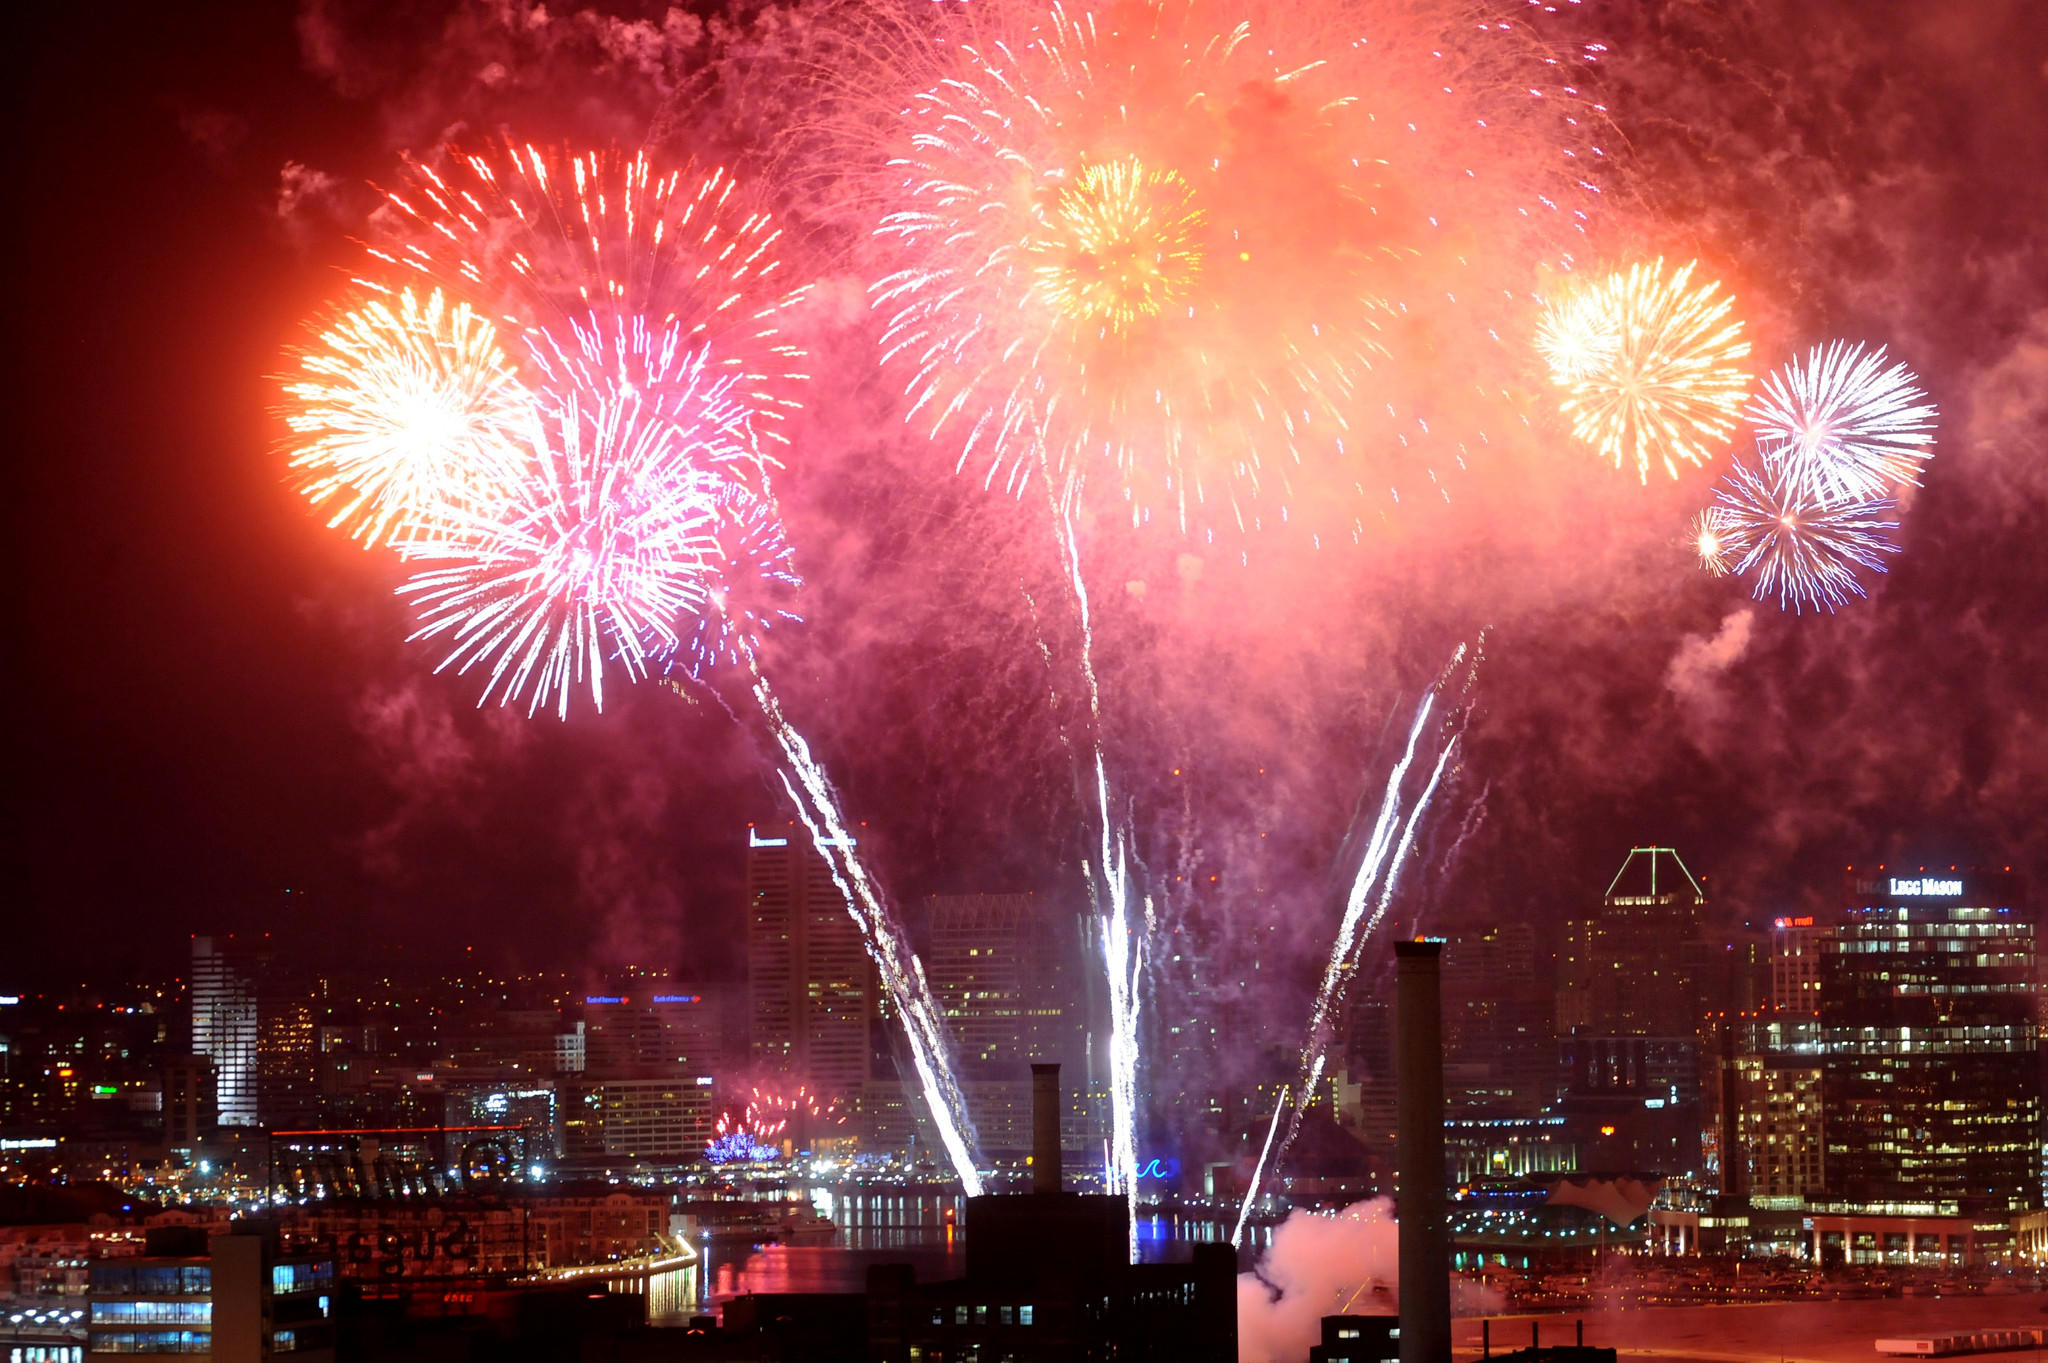 Baltimore rings in 2012 with New Year's Eve fireworks over the inner harbor as seen from Silo Point.